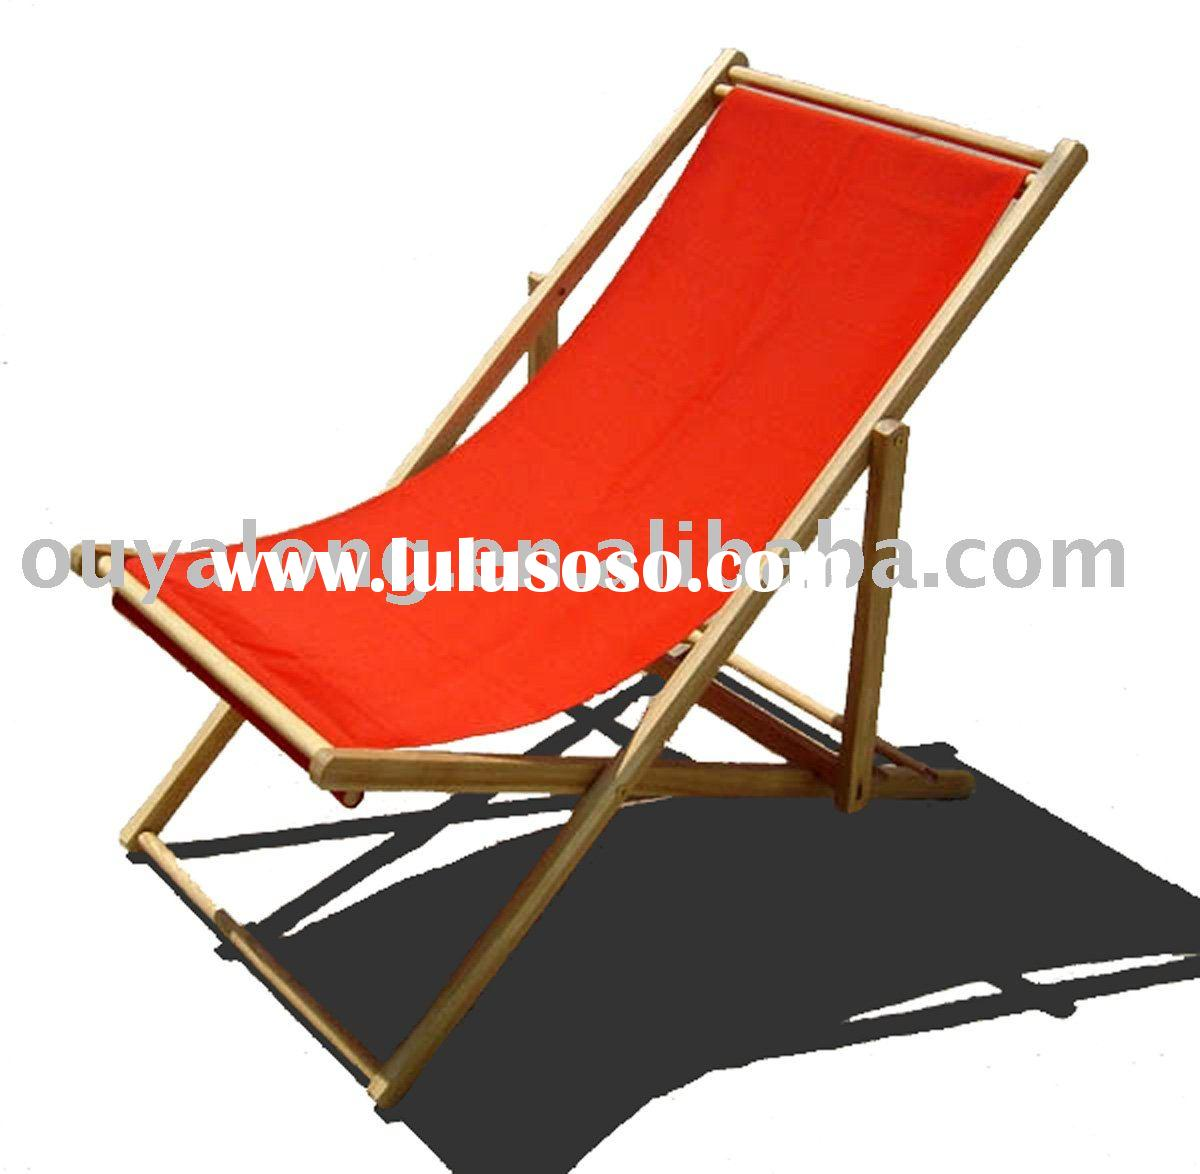 how to make a wooden beach chair outdoor wicker lounge wood for sale price china manufacturer